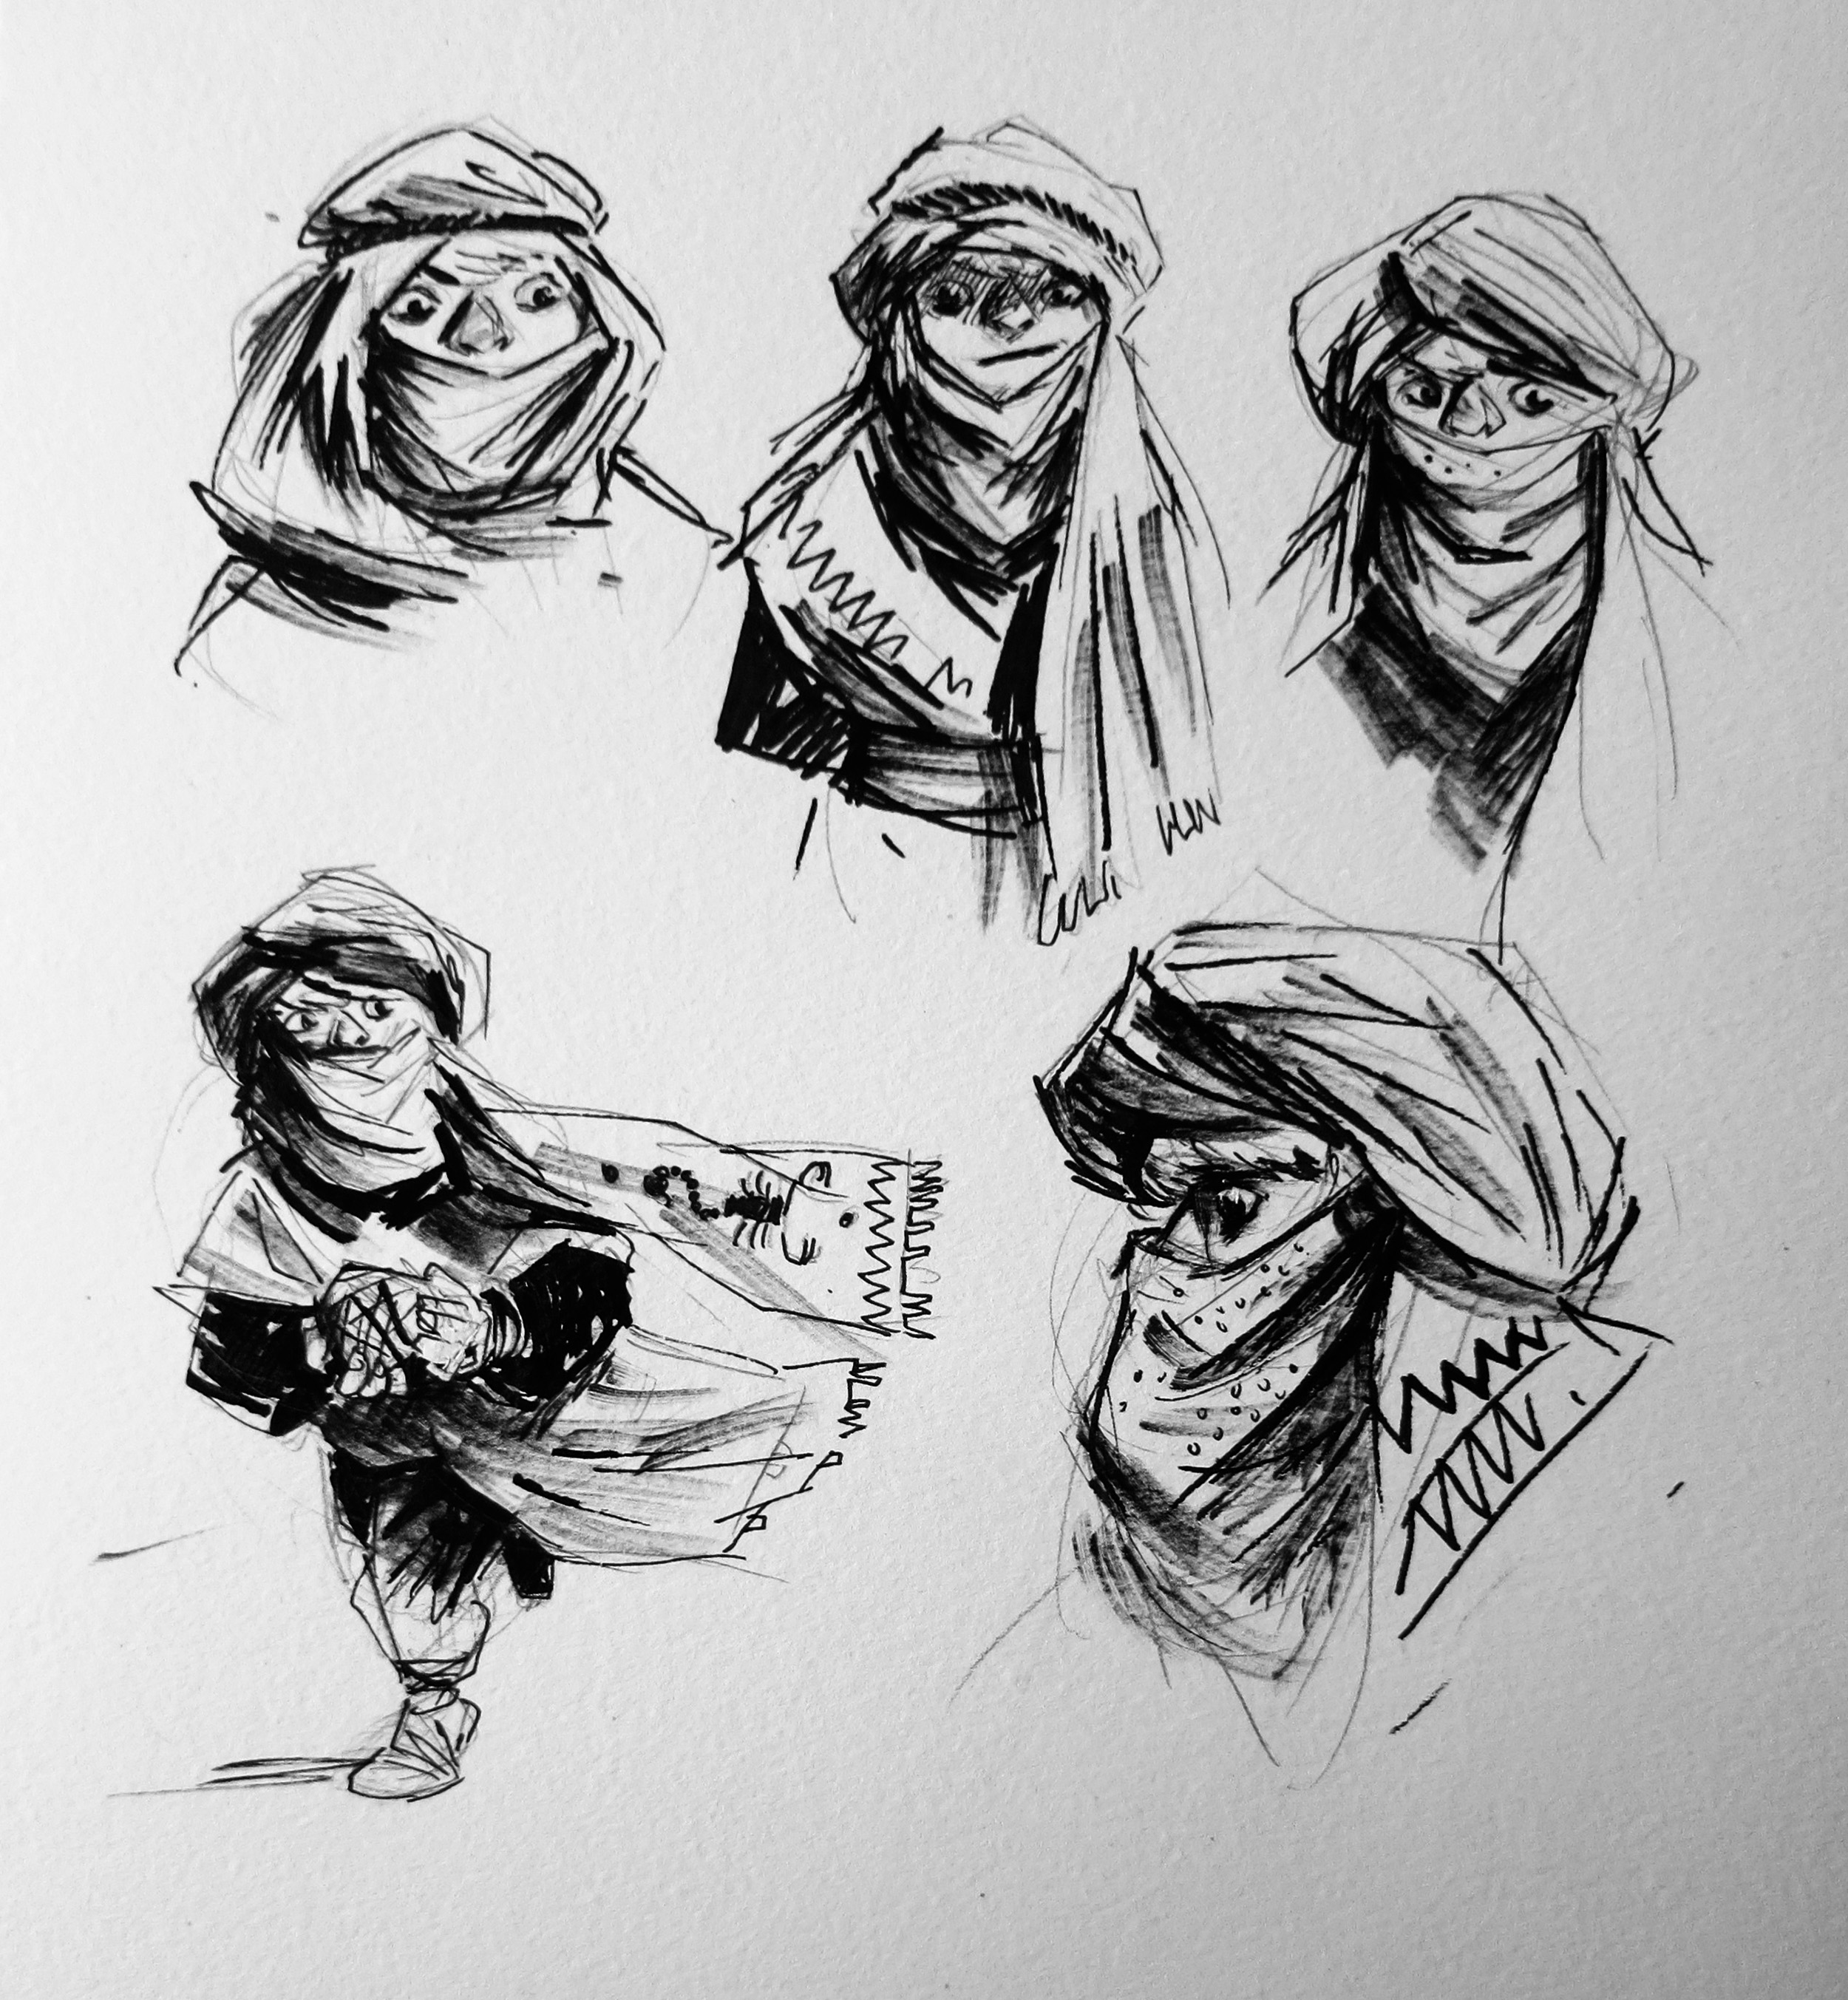 Piramide: character sketches